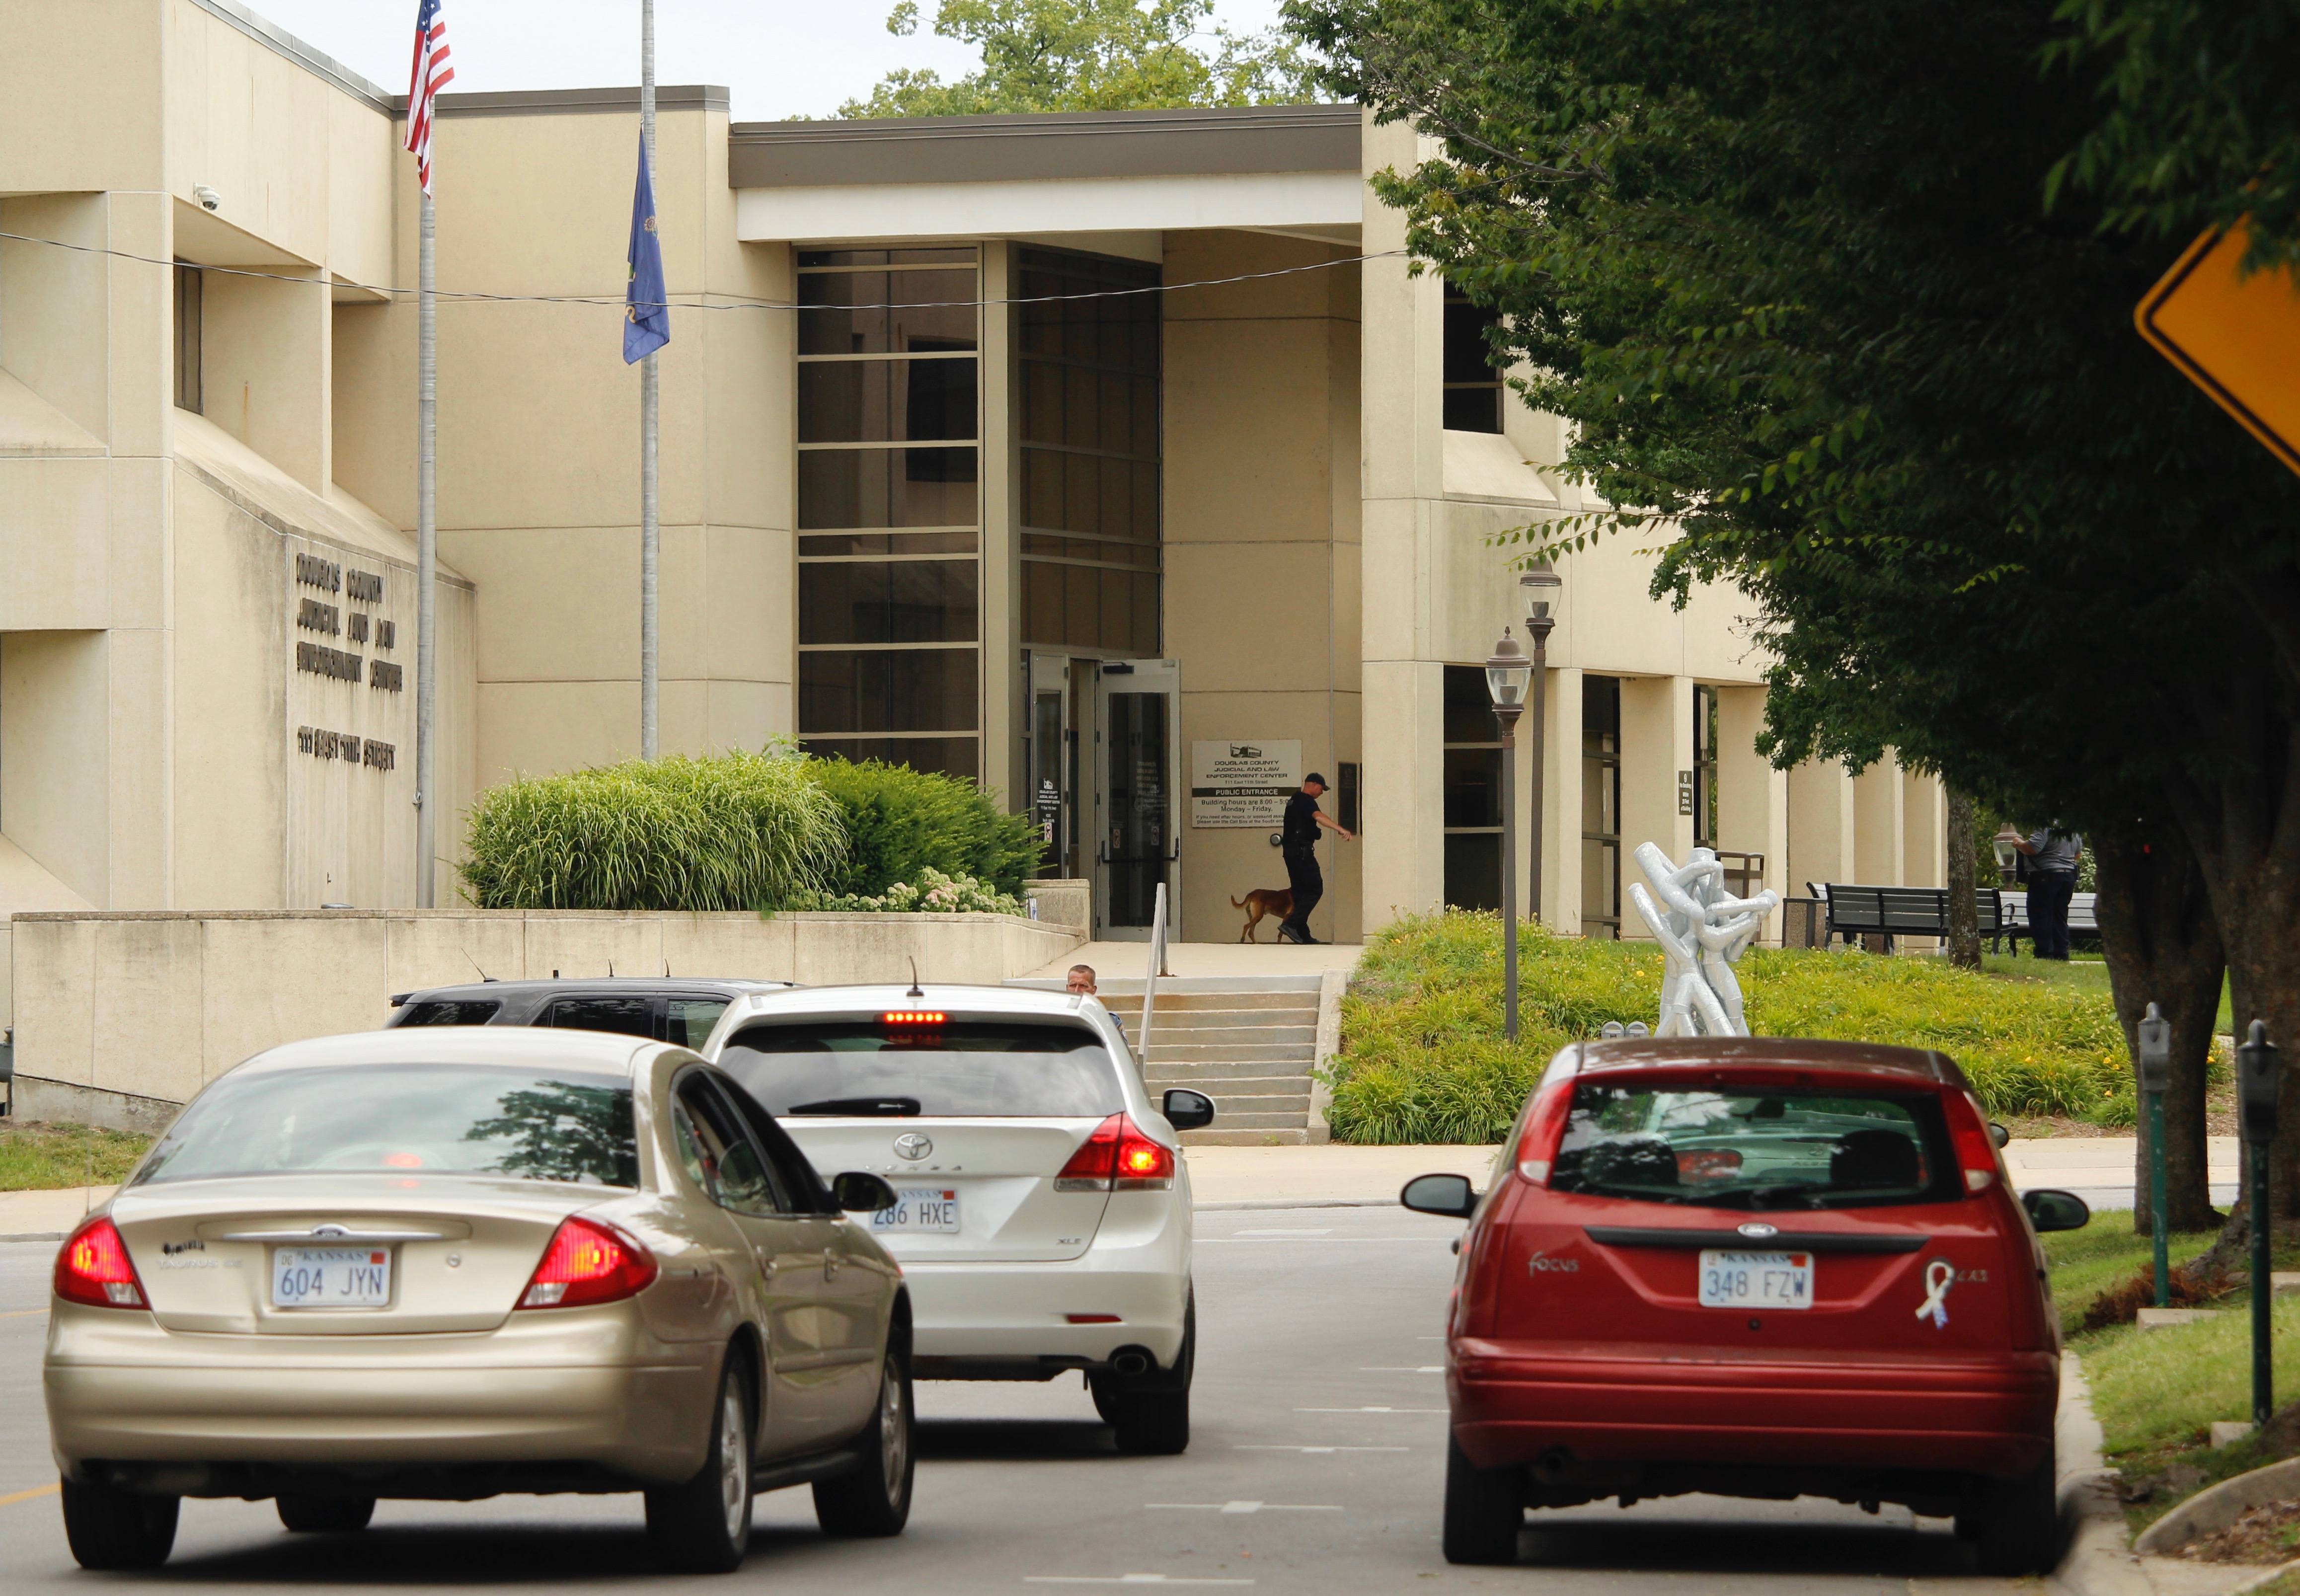 Bomb threat deemed not credible after search of Douglas